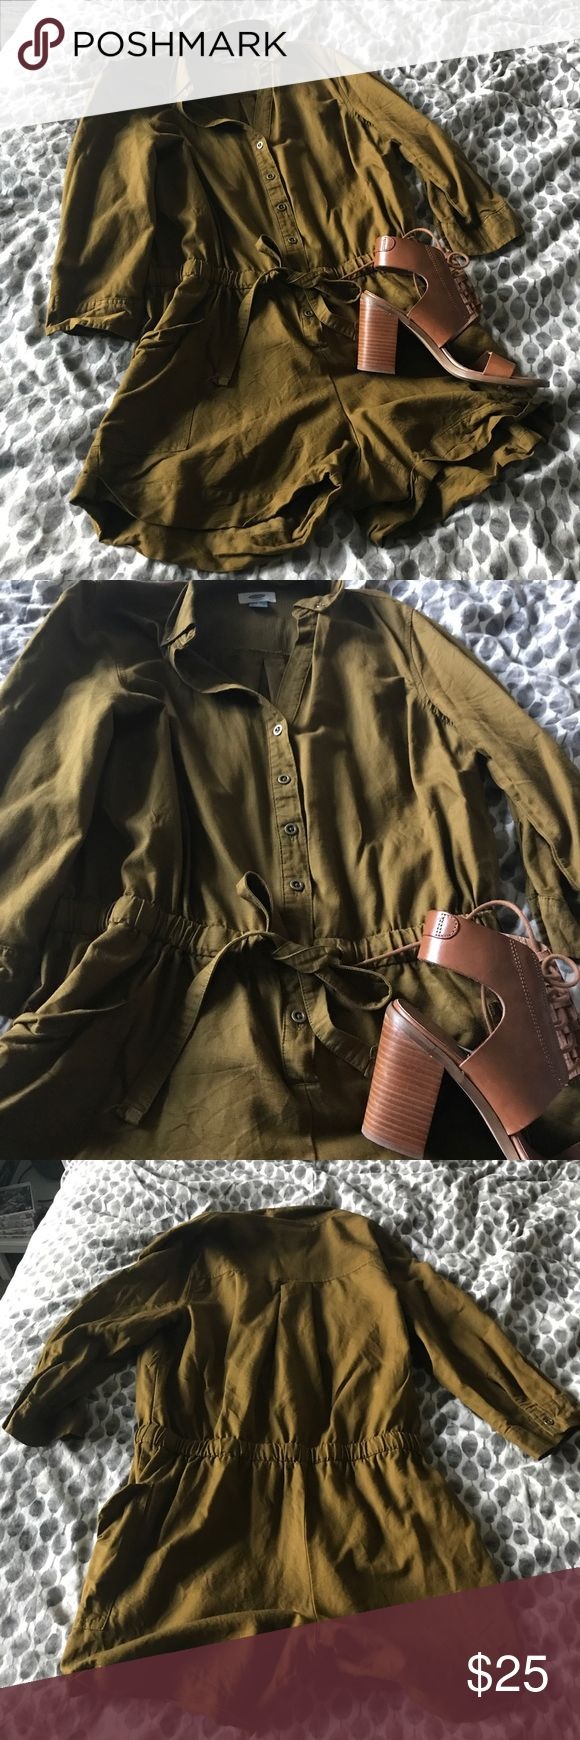 Od Navy romper Old Navy military green romper with tie waist and pockets. Button-up front leading to elastic waistband very flattering! Great piece for fall! 54% rayon, 46% cotton Old Navy Pants Jumpsuits & Rompers